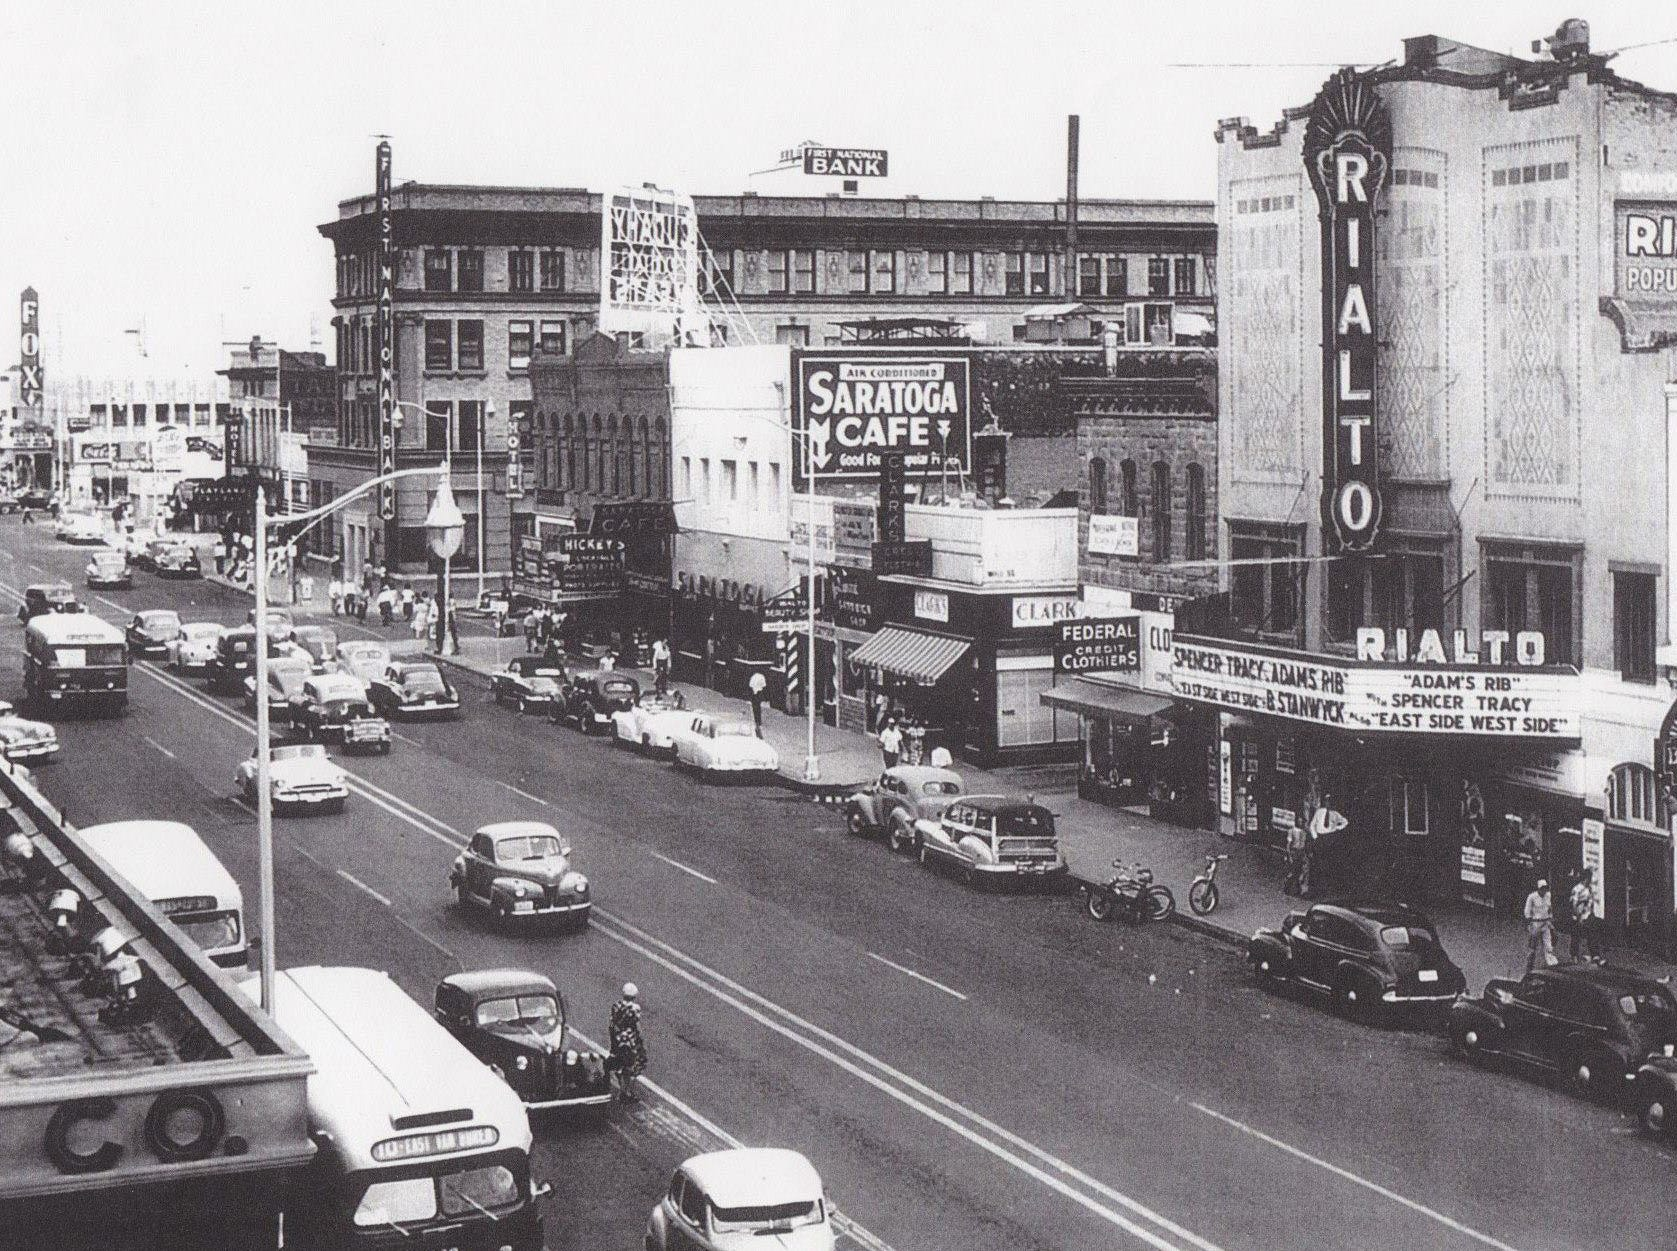 The Fox Theatre (left) was once the grandest movie theater in Phoenix. It was torn down in 1978 to make way for Phoenix's downtown bus terminal.